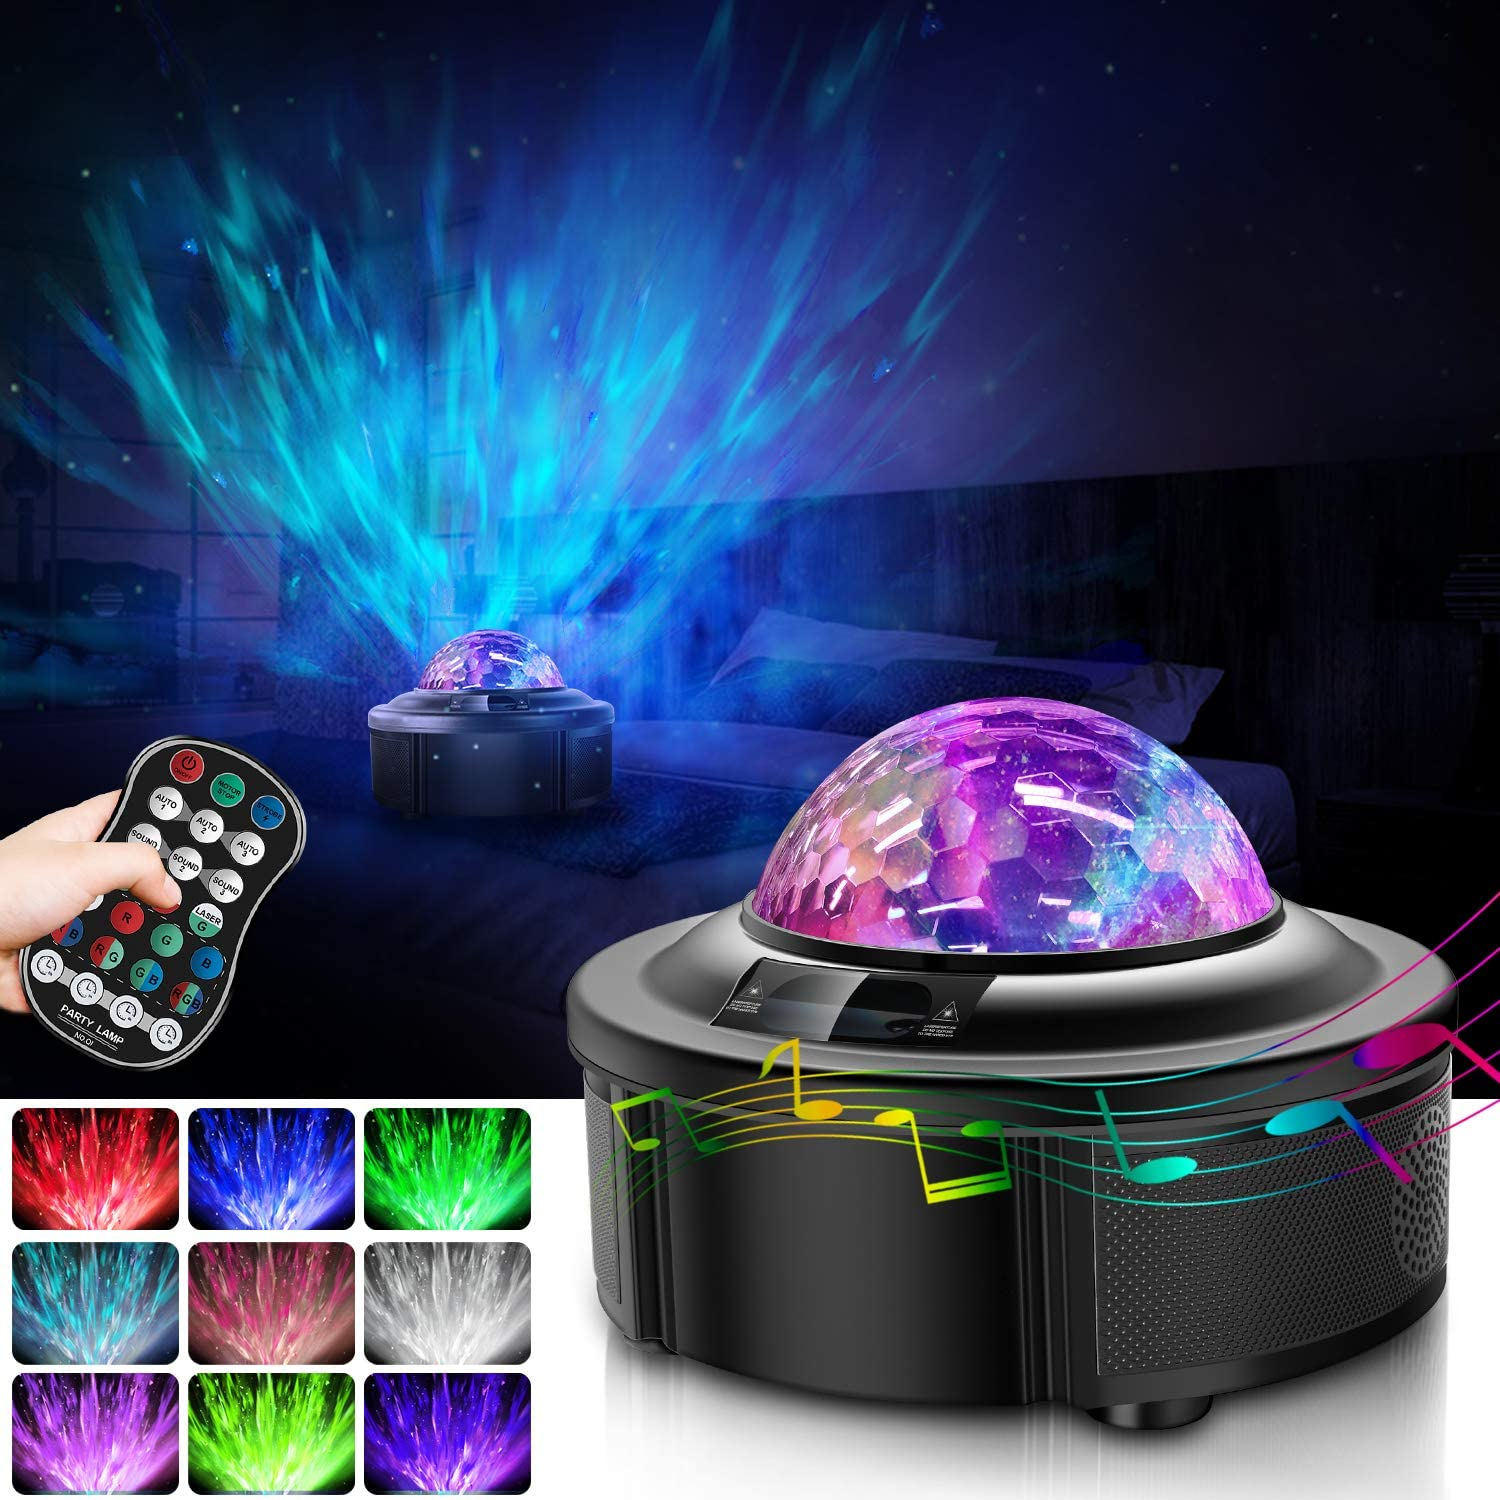 Galaxy Projector Suitable for Romantic Gifts Led Night Light Star Projector HOKEKI Lights for Bedroom Starlight Projector,with Bluetooth Speaker Can Remote Control Adjust Brightness